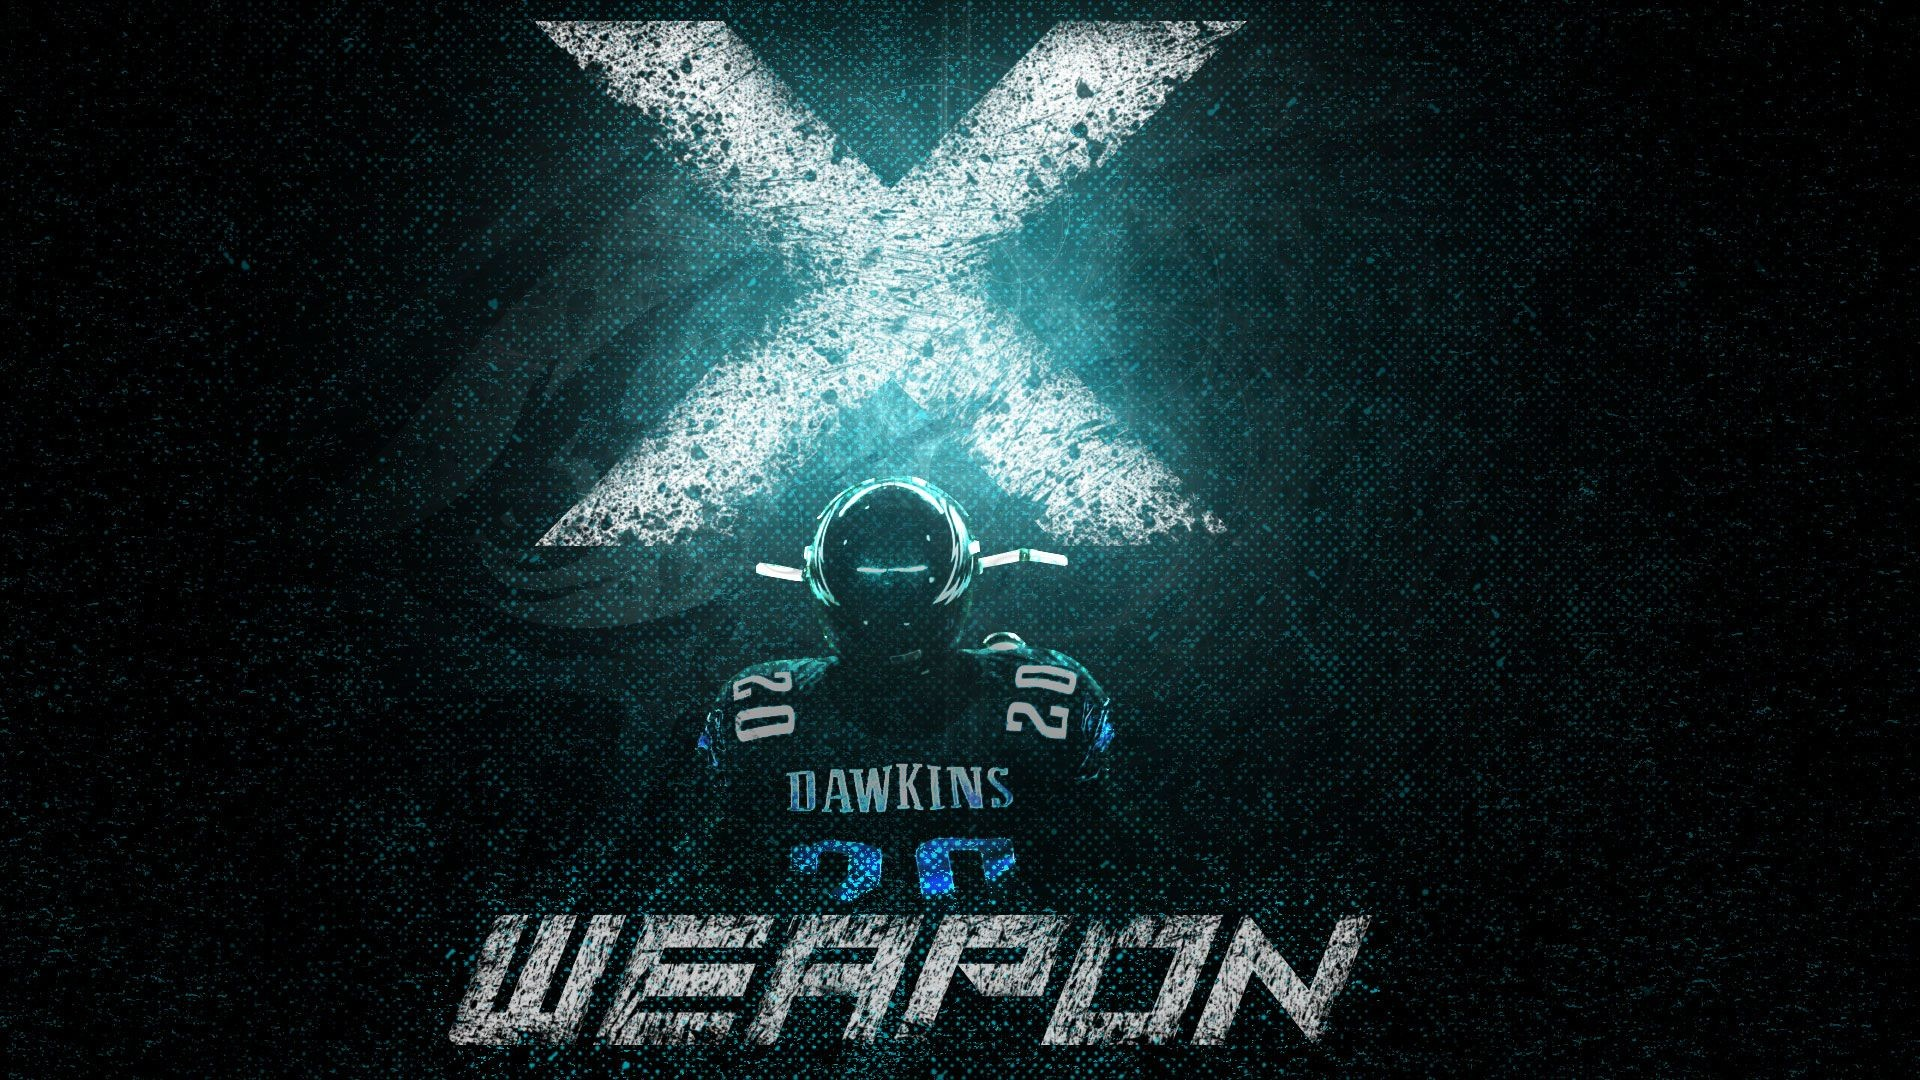 1920x1080 brian dawkins wallpaper hd pixelstalk net · philadelphia eagles wallpaper  ...